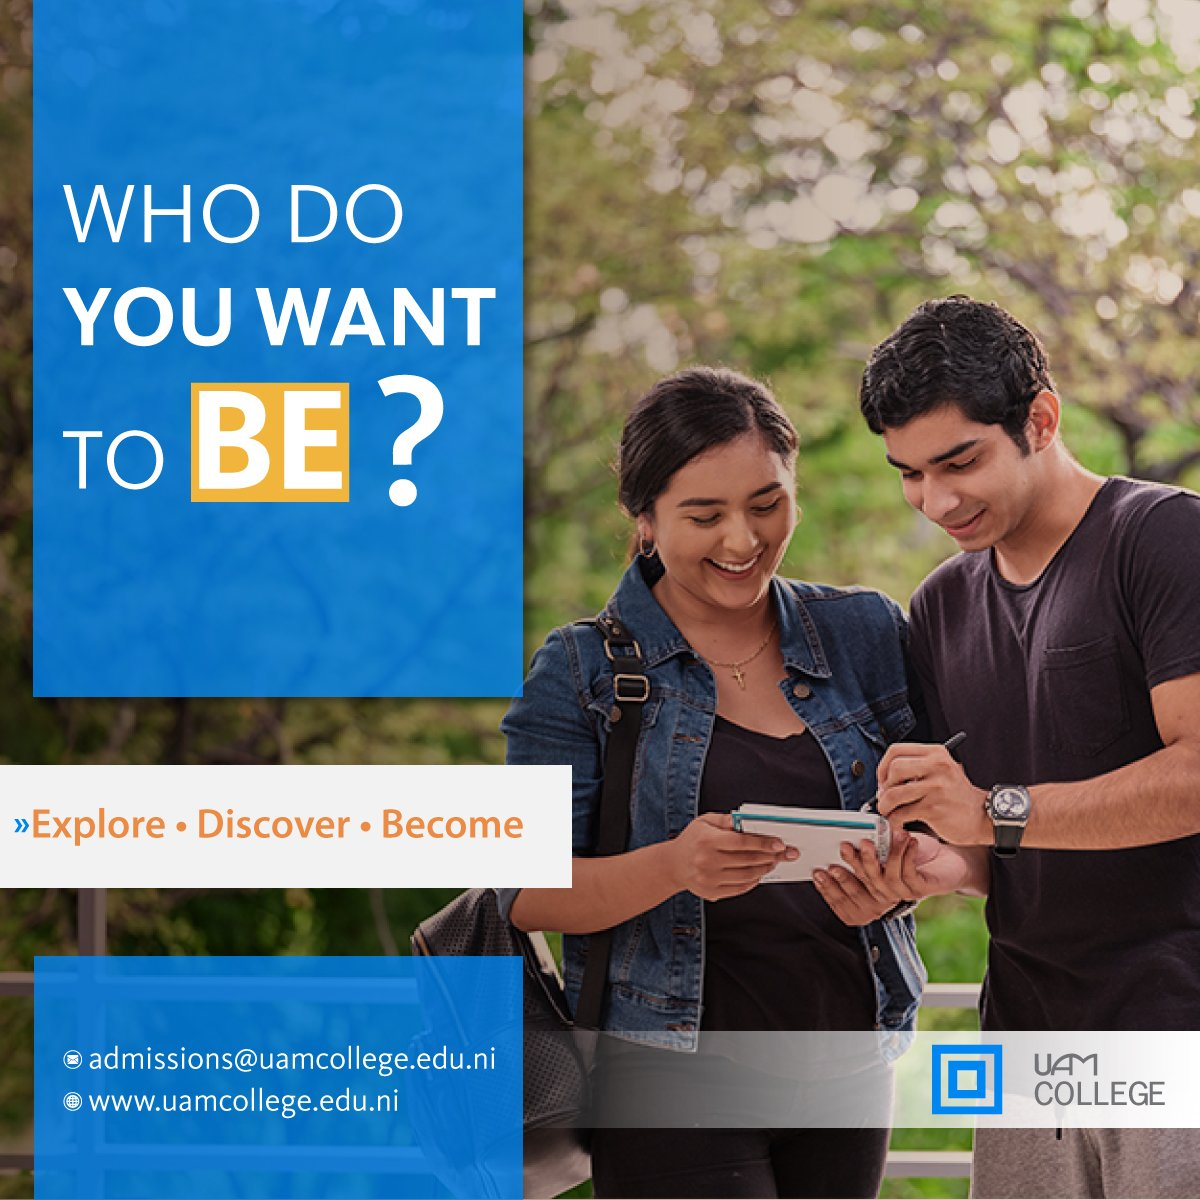 #BeInspiring #BeExponential #BeVisionary #BeAdventurous #BeLifeChanging  #BeUAMCollege https://t.co/MGugFH8zCI